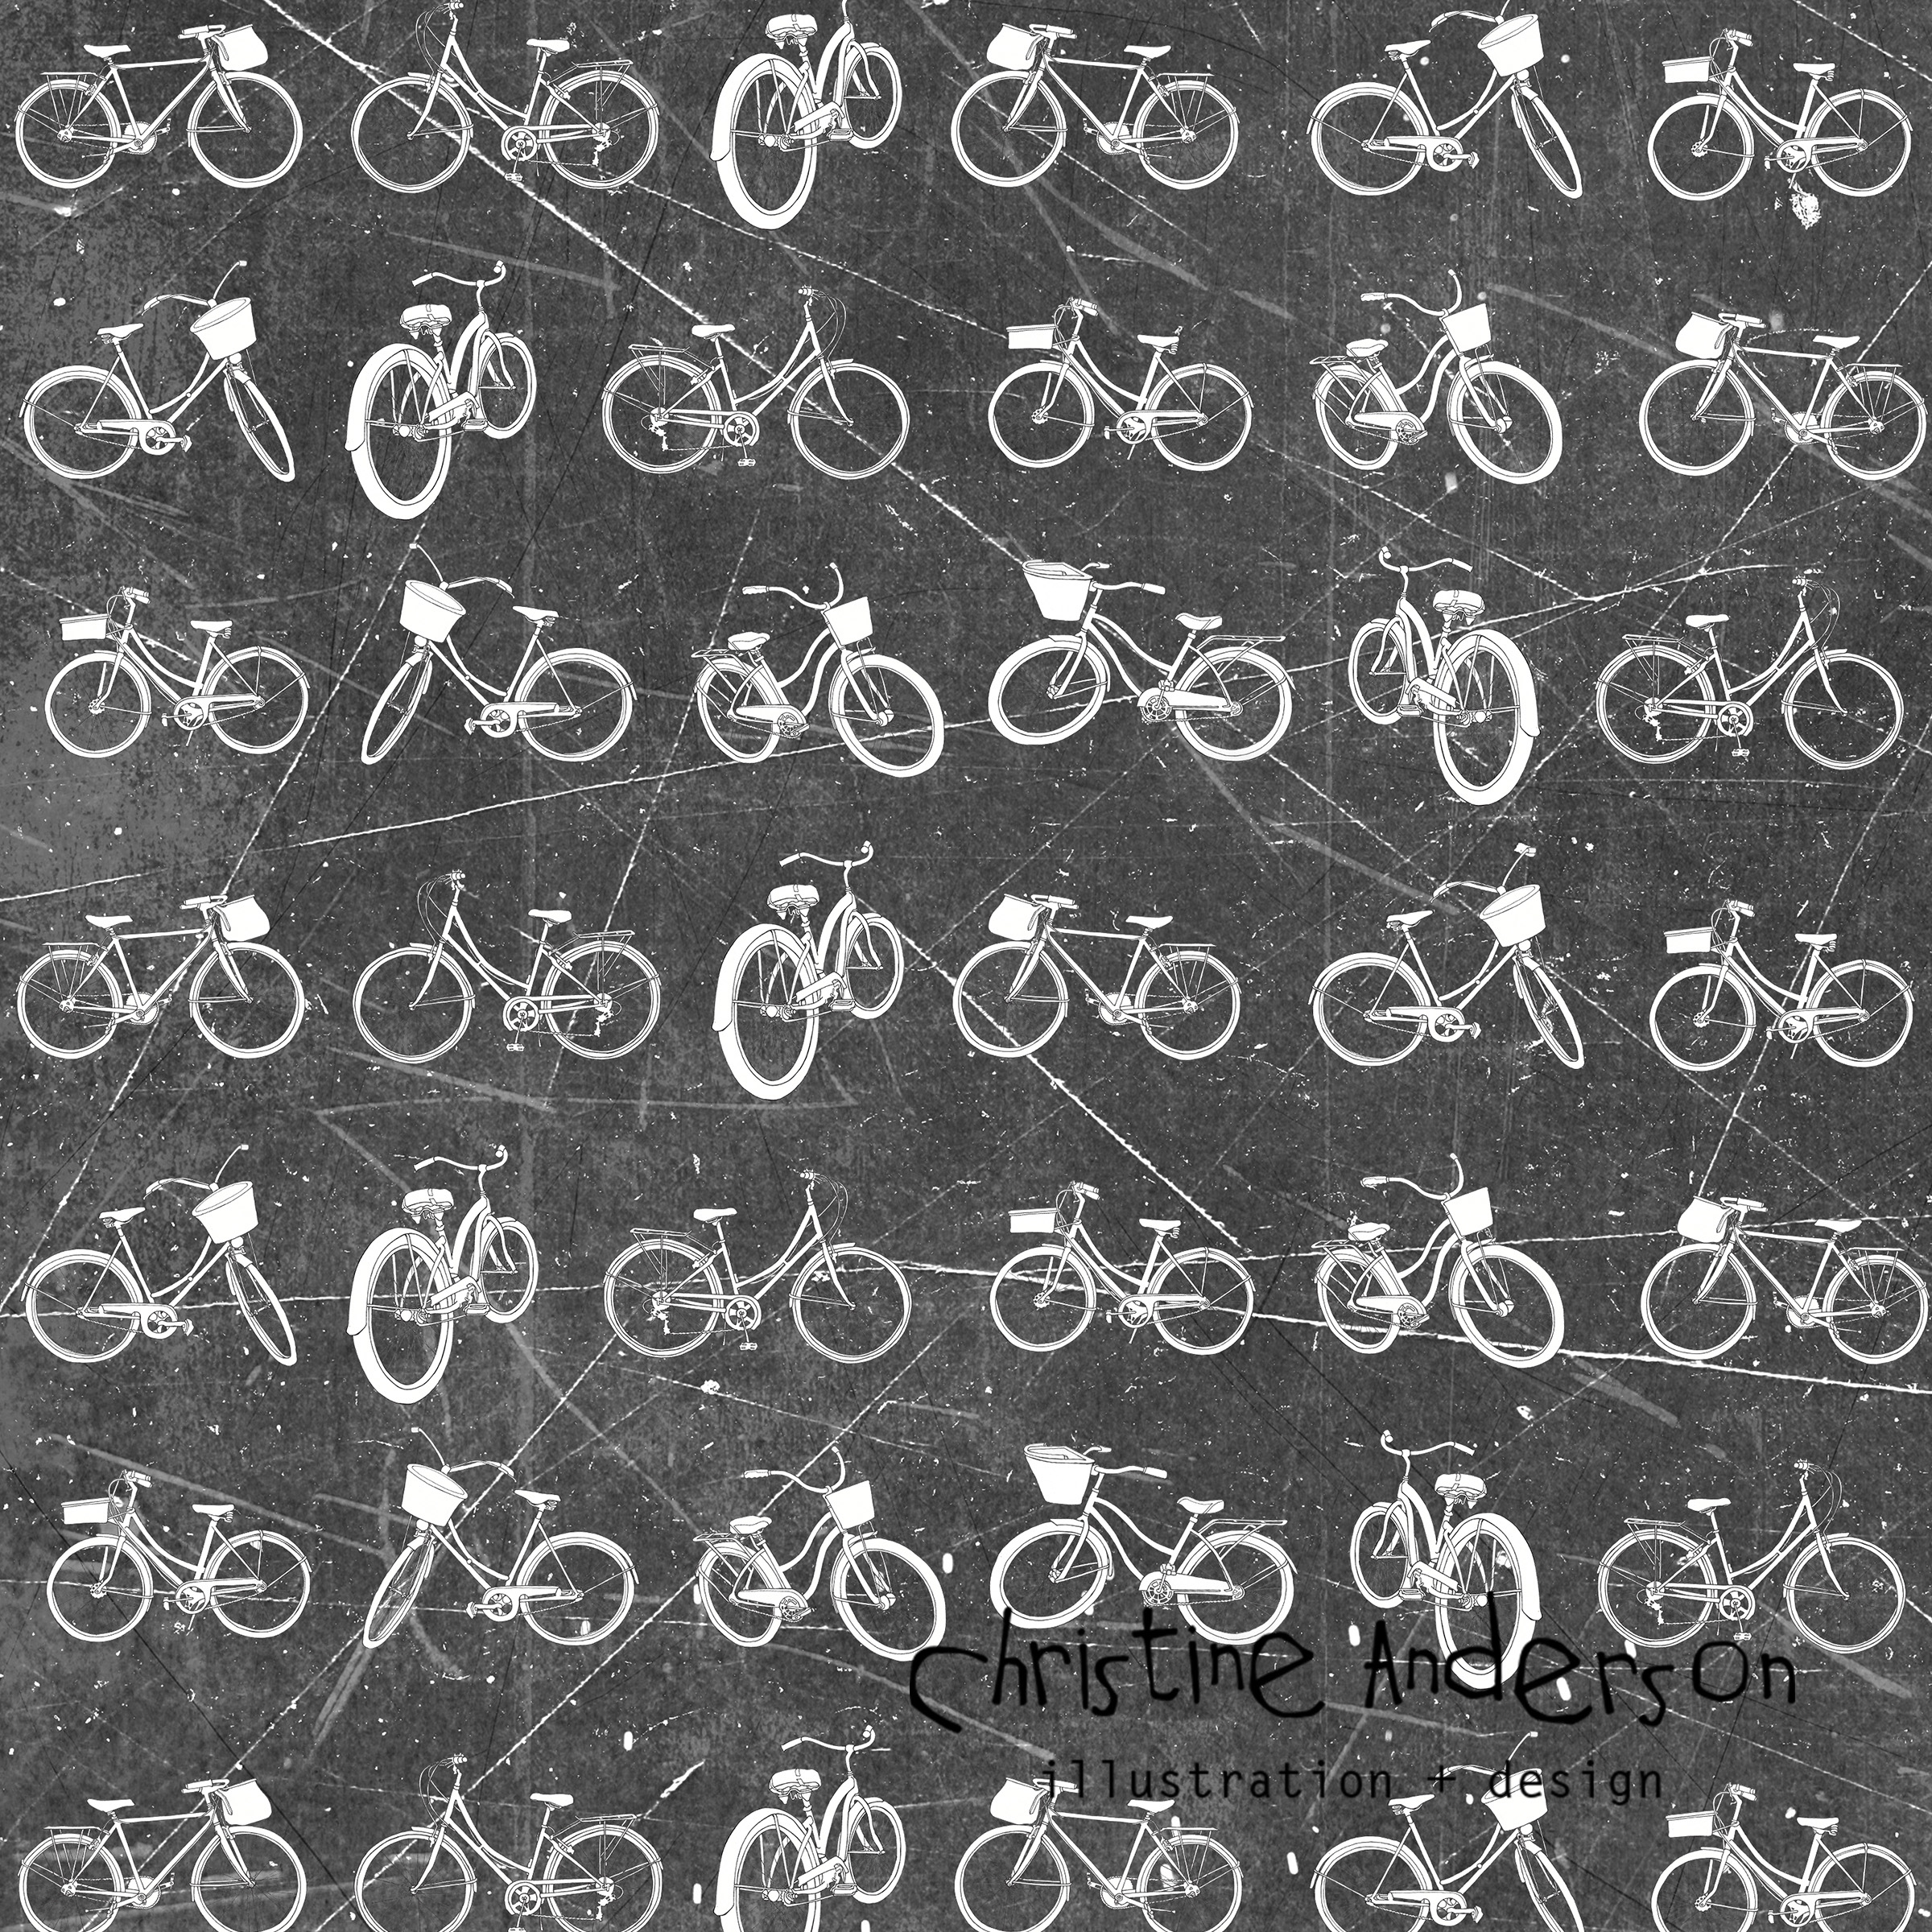 Gray distress back bike pattern INSTA.jpg